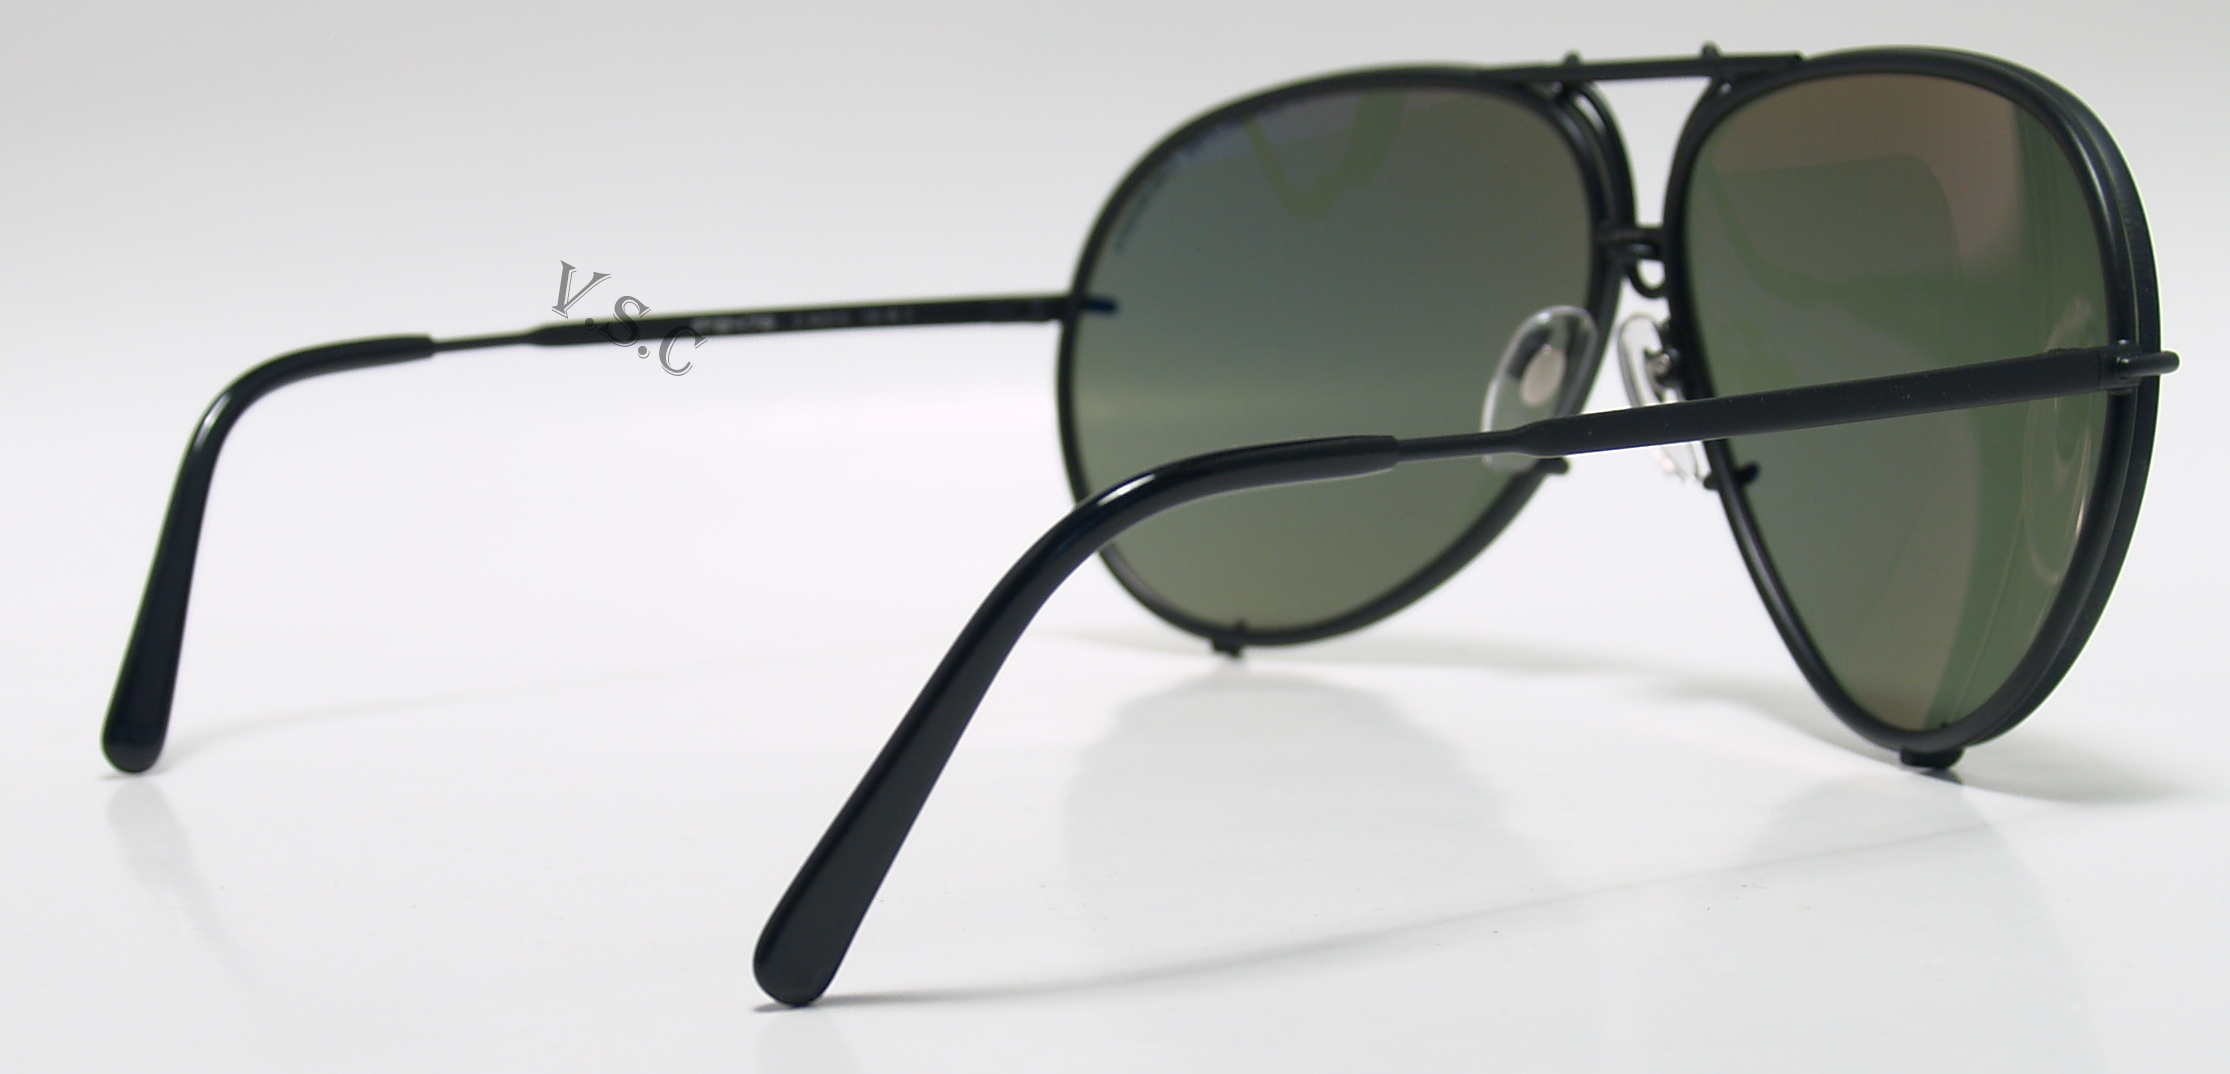 design sunglasses online  design p8478